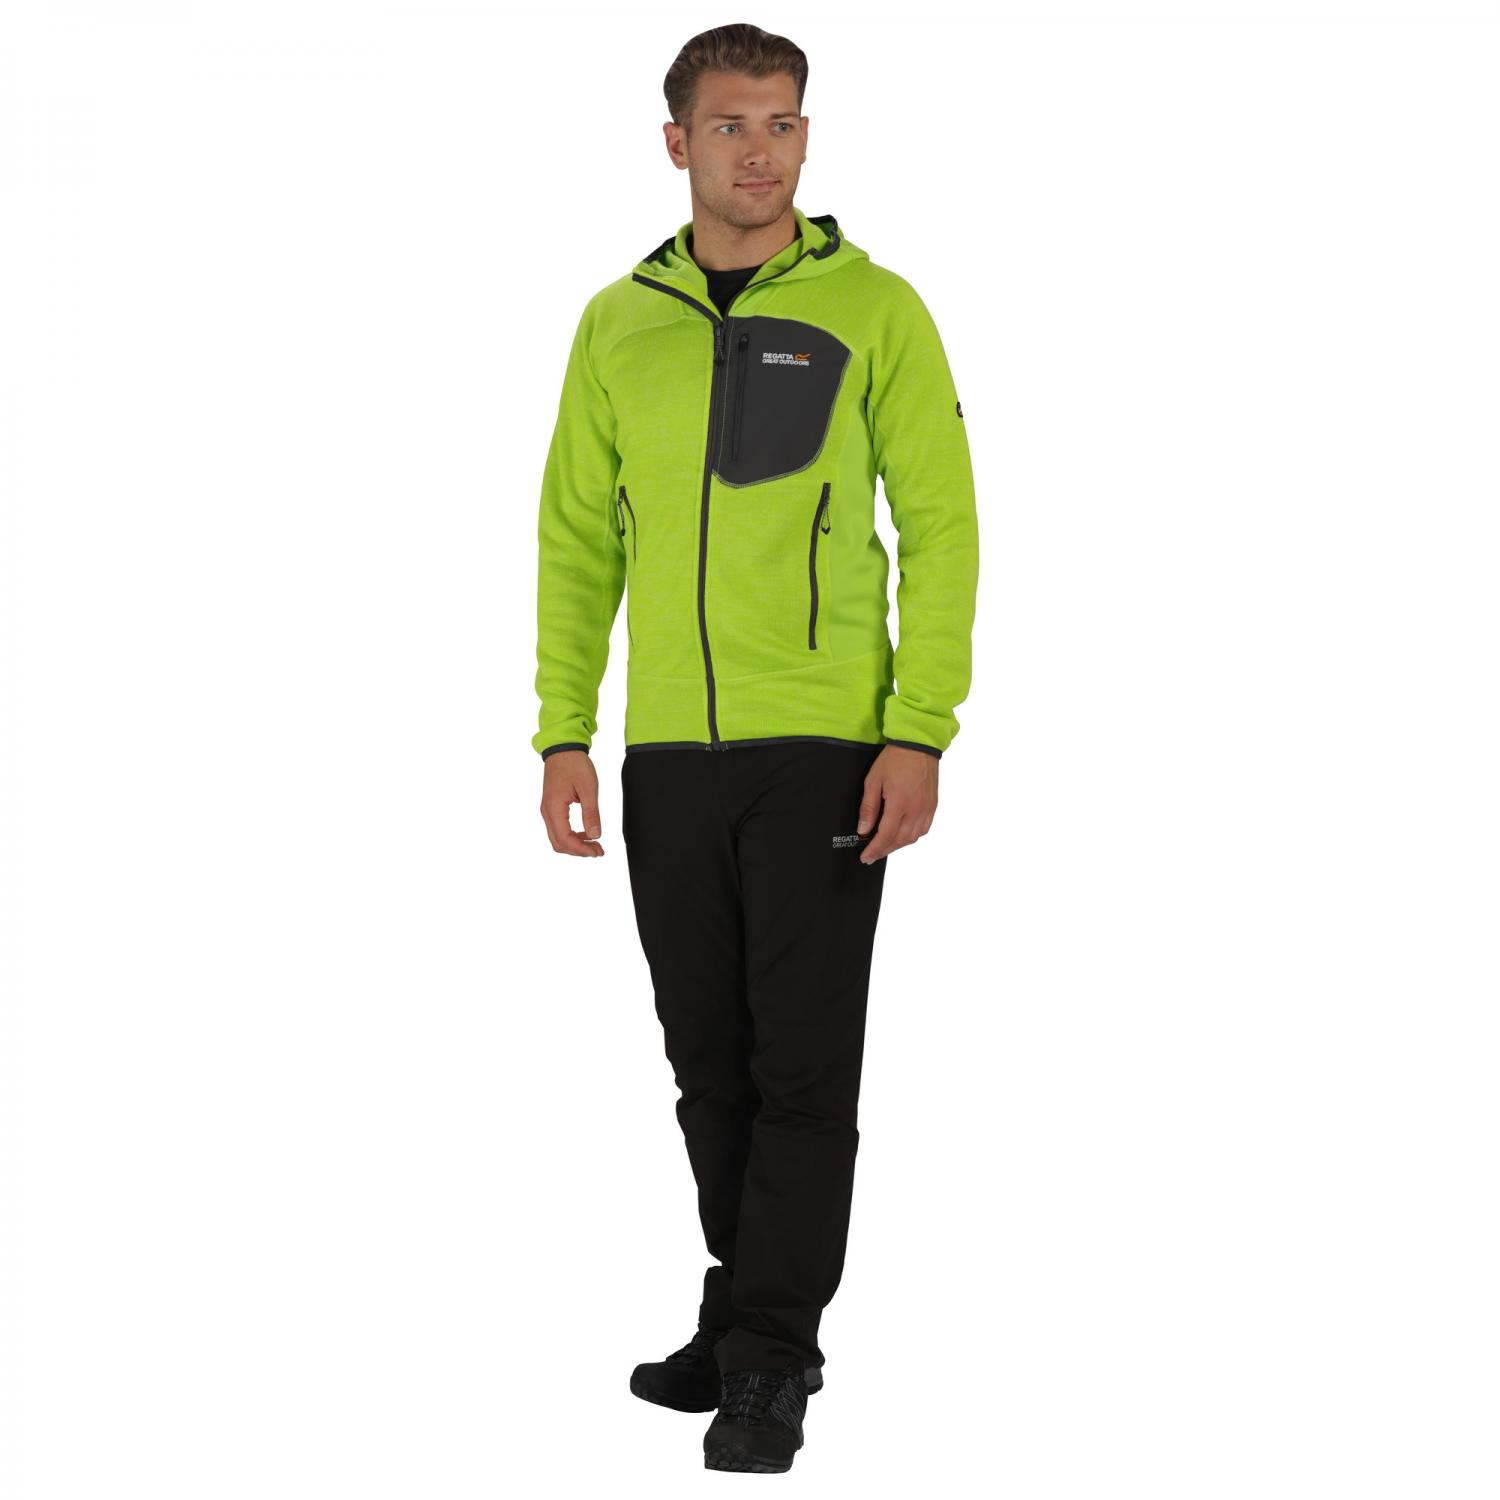 Cartersville III Hooded Fleece Lime Green